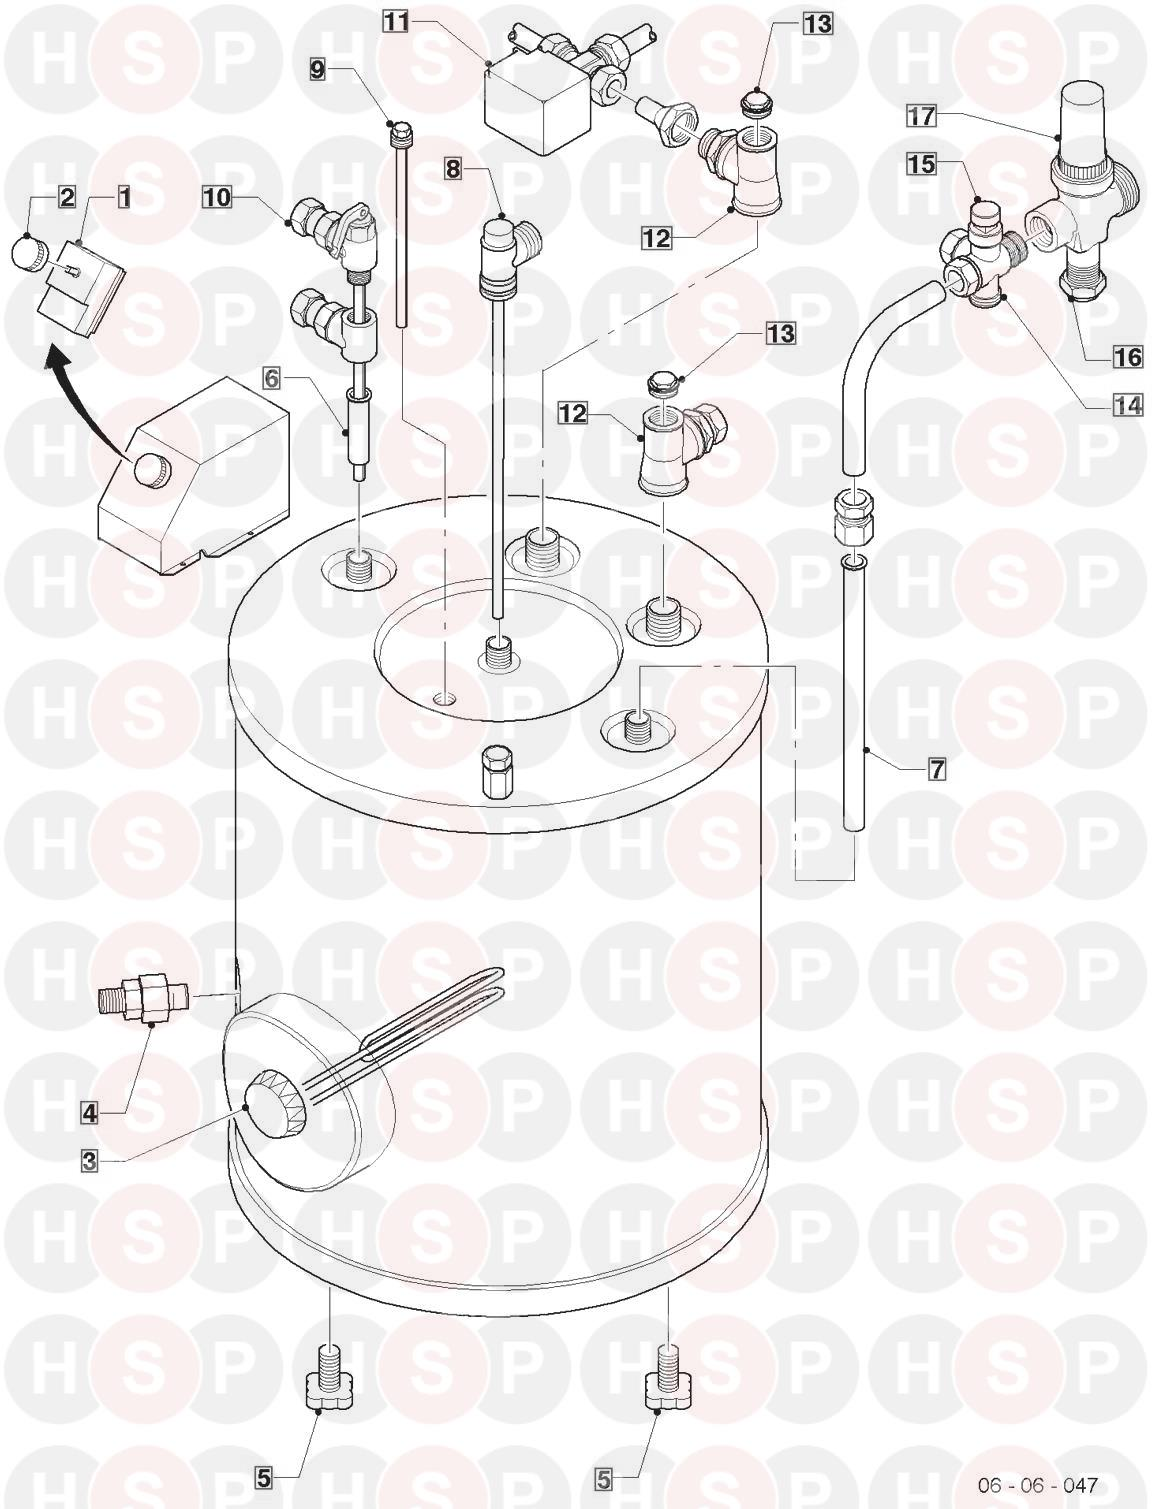 Vaillant VIH CR 150/4 1999-2003 (305806) (EXPLODED VIEW